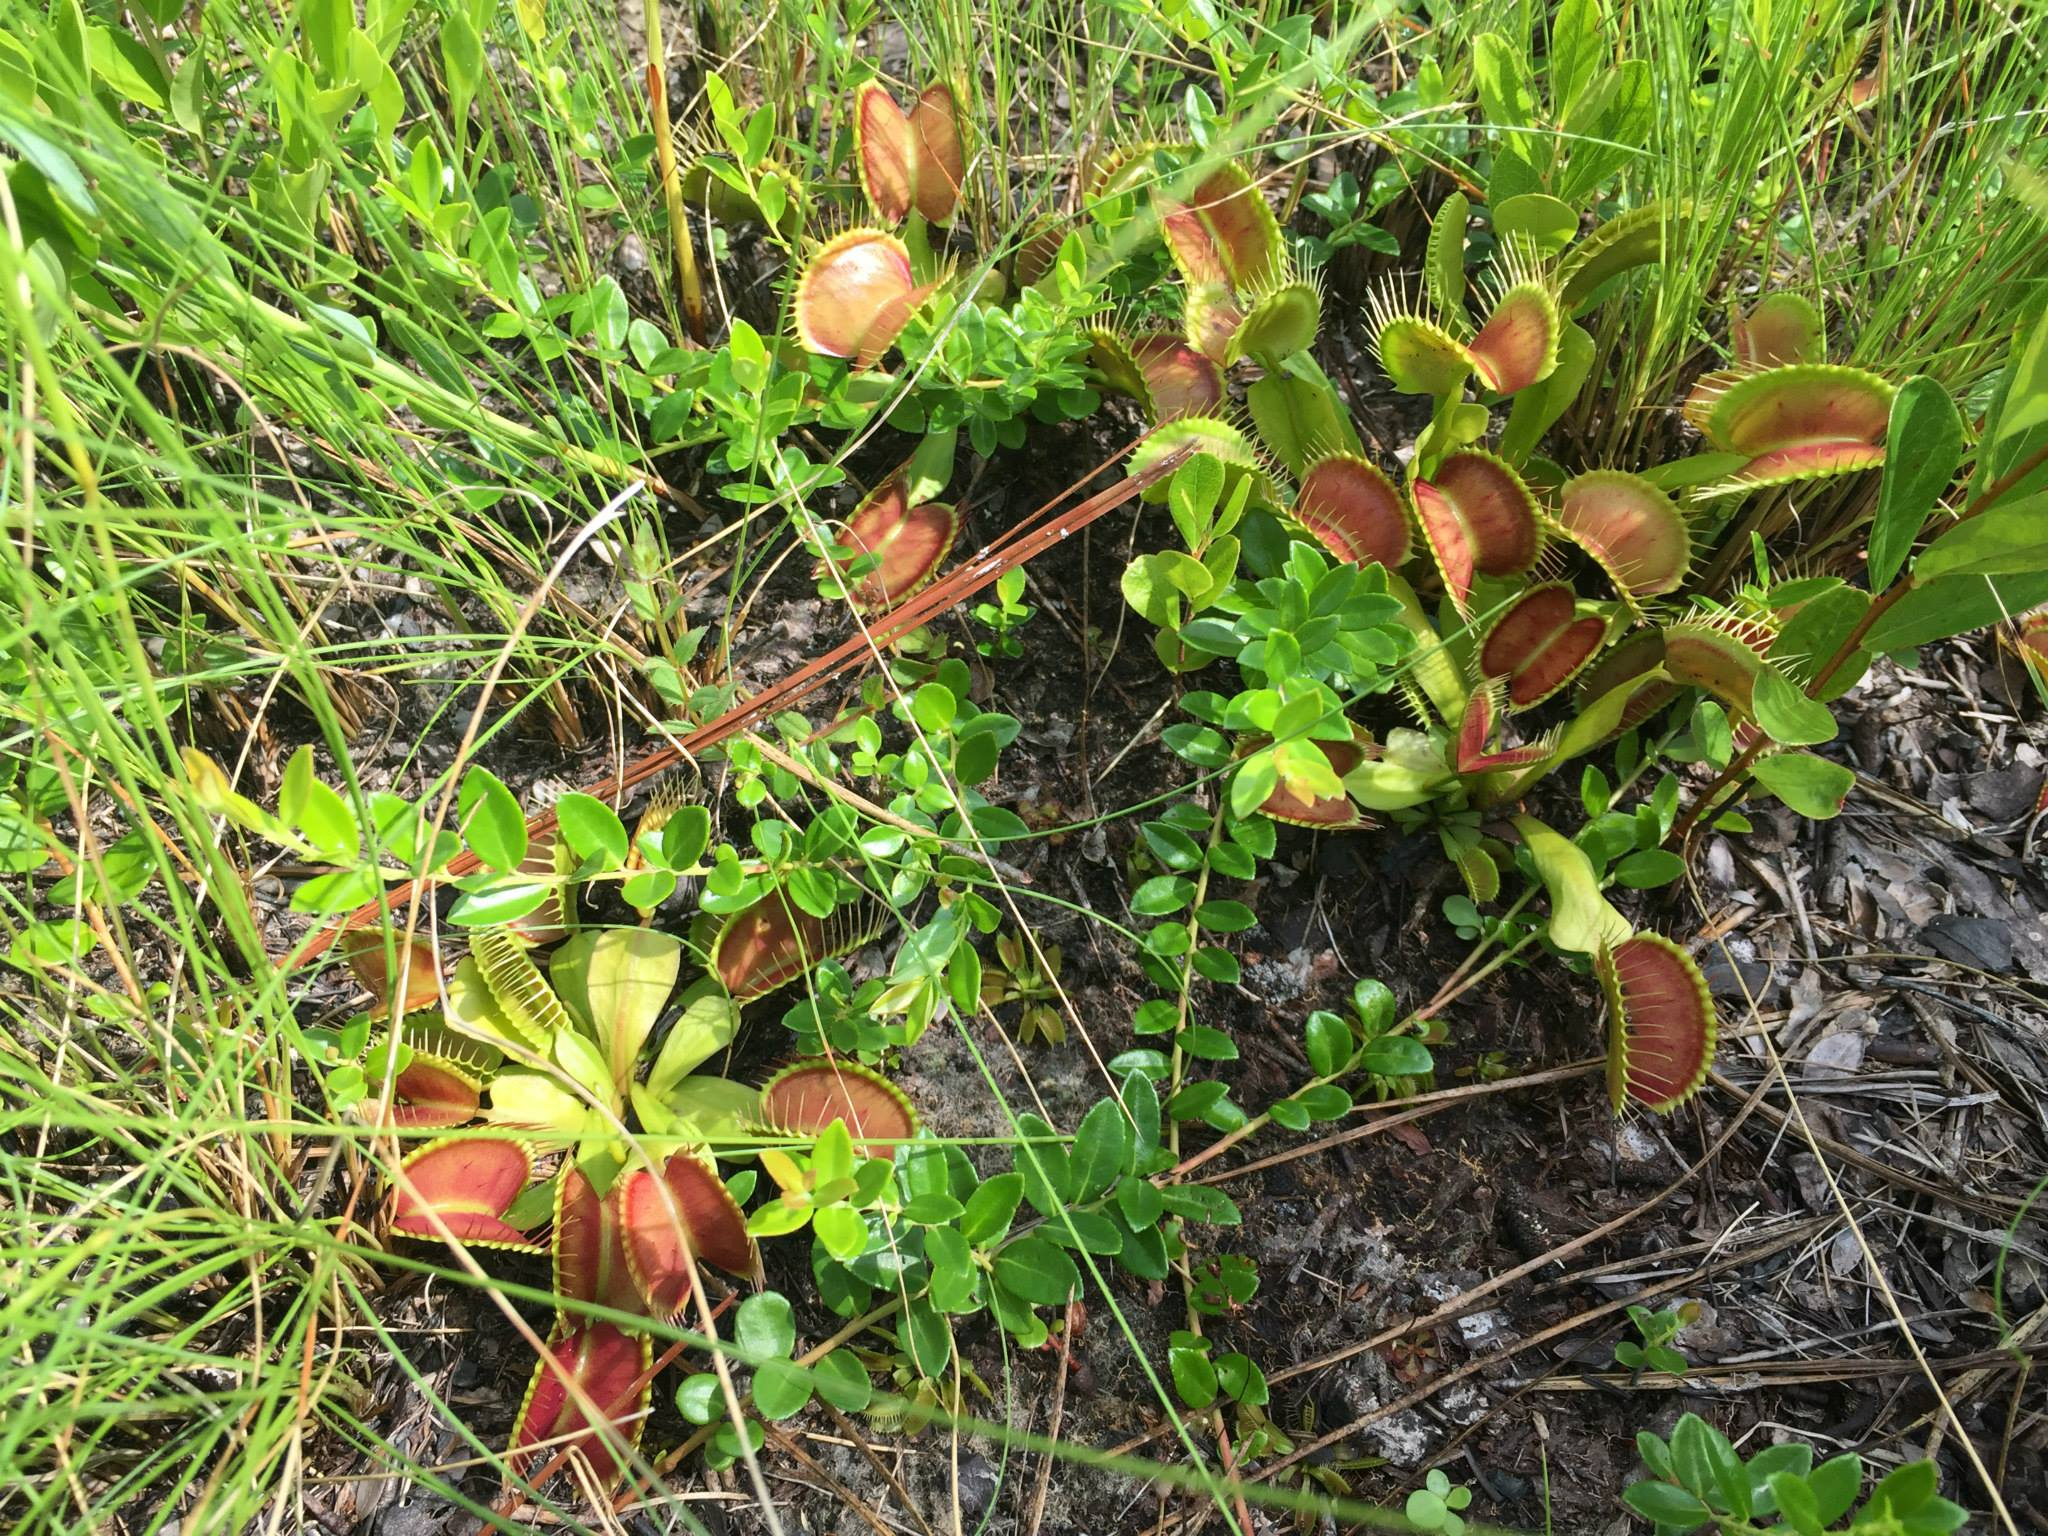 Venus flytraps (Dionaea muscipula) and other carnivorous plants.